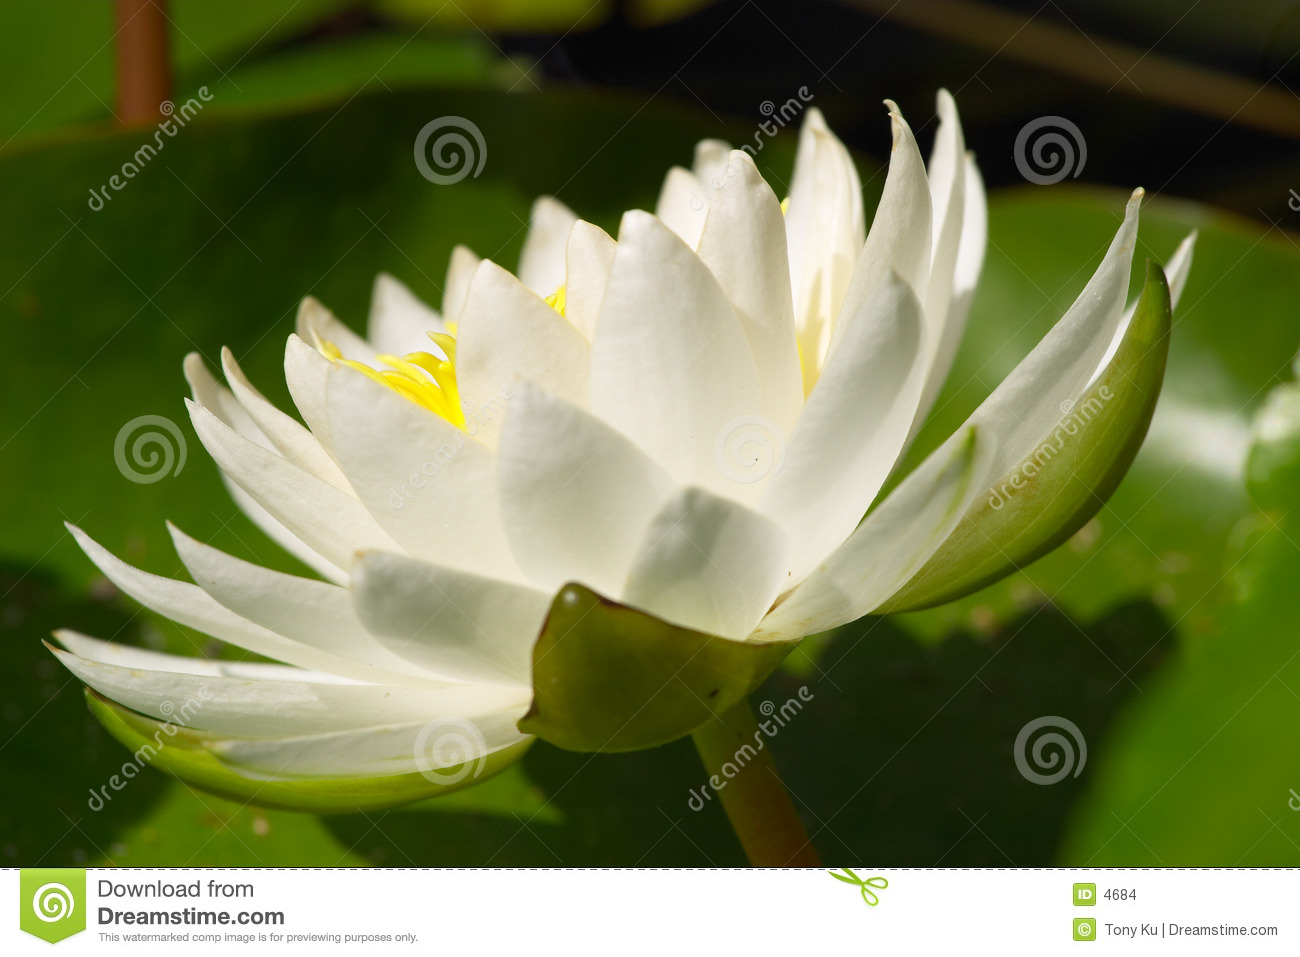 L eau blanche Lilly